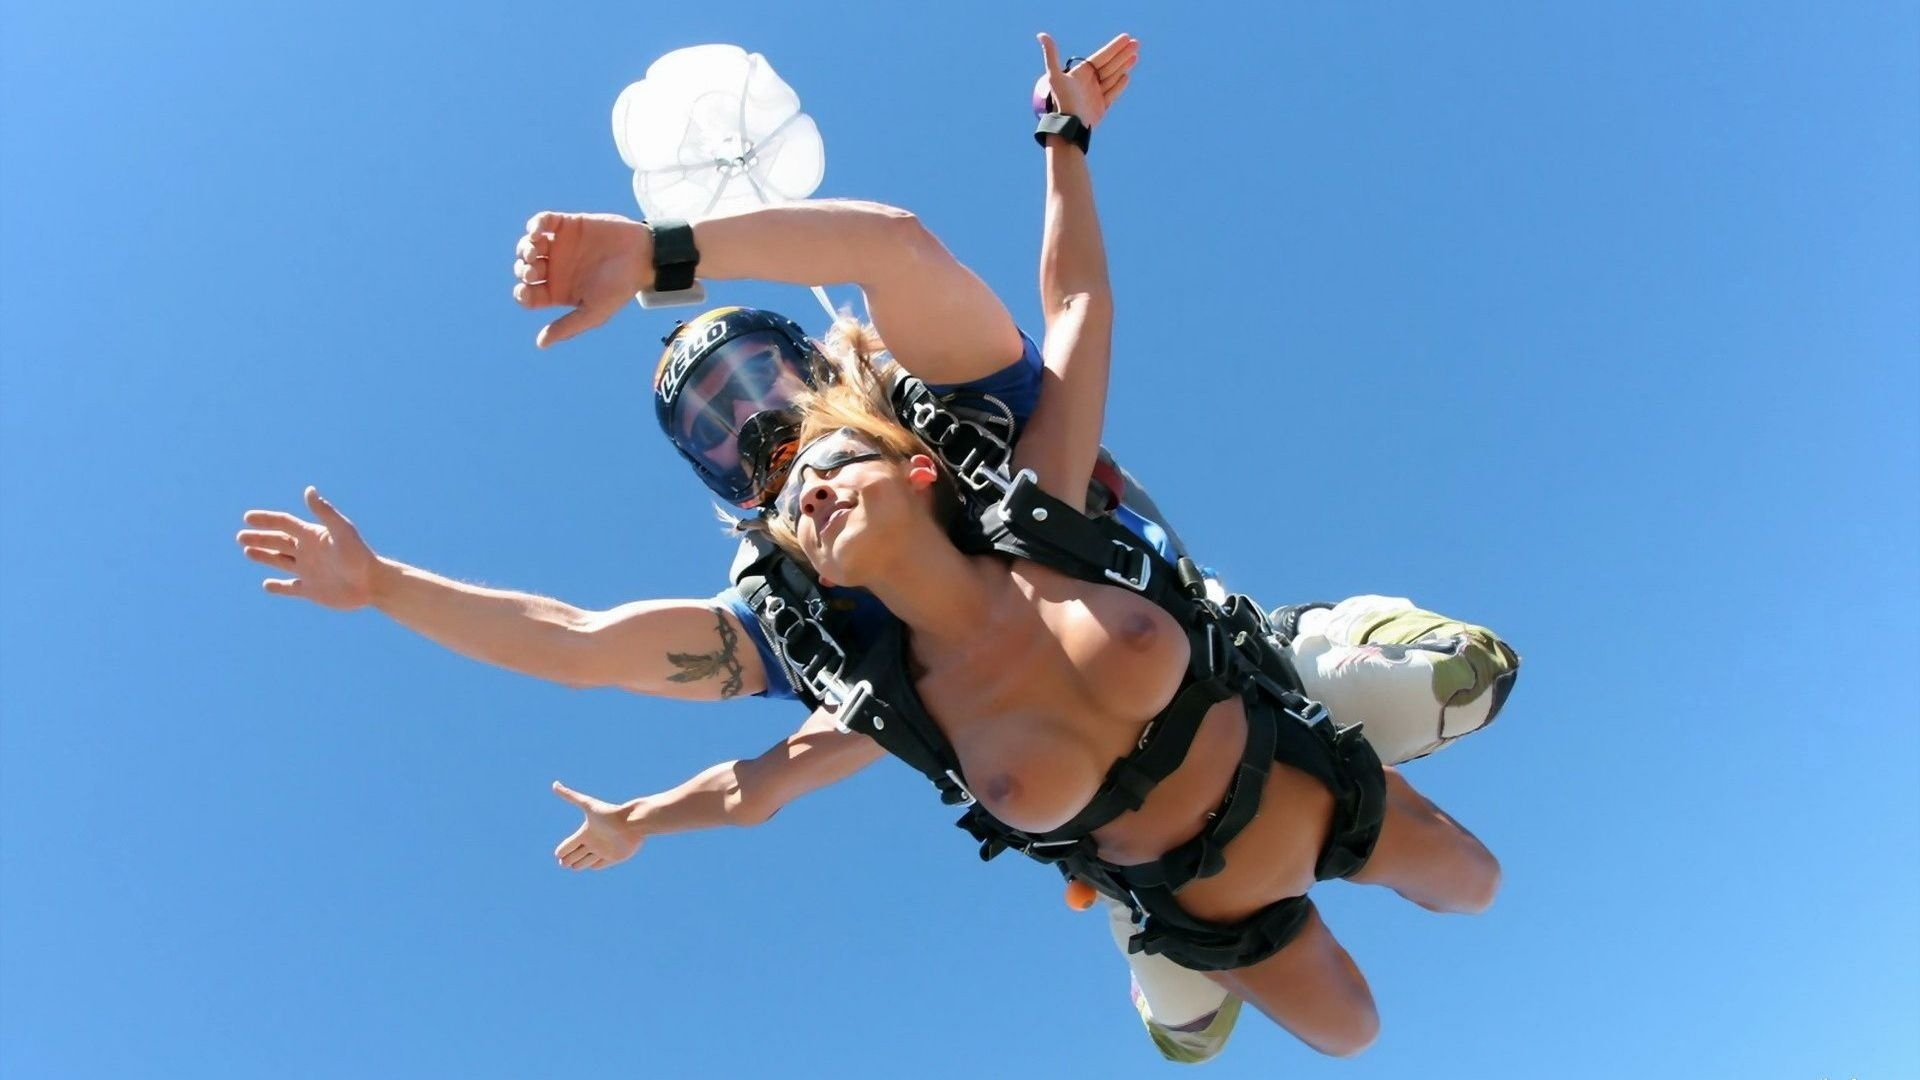 Naked girls skydiving galleries, granny in leather and stockings